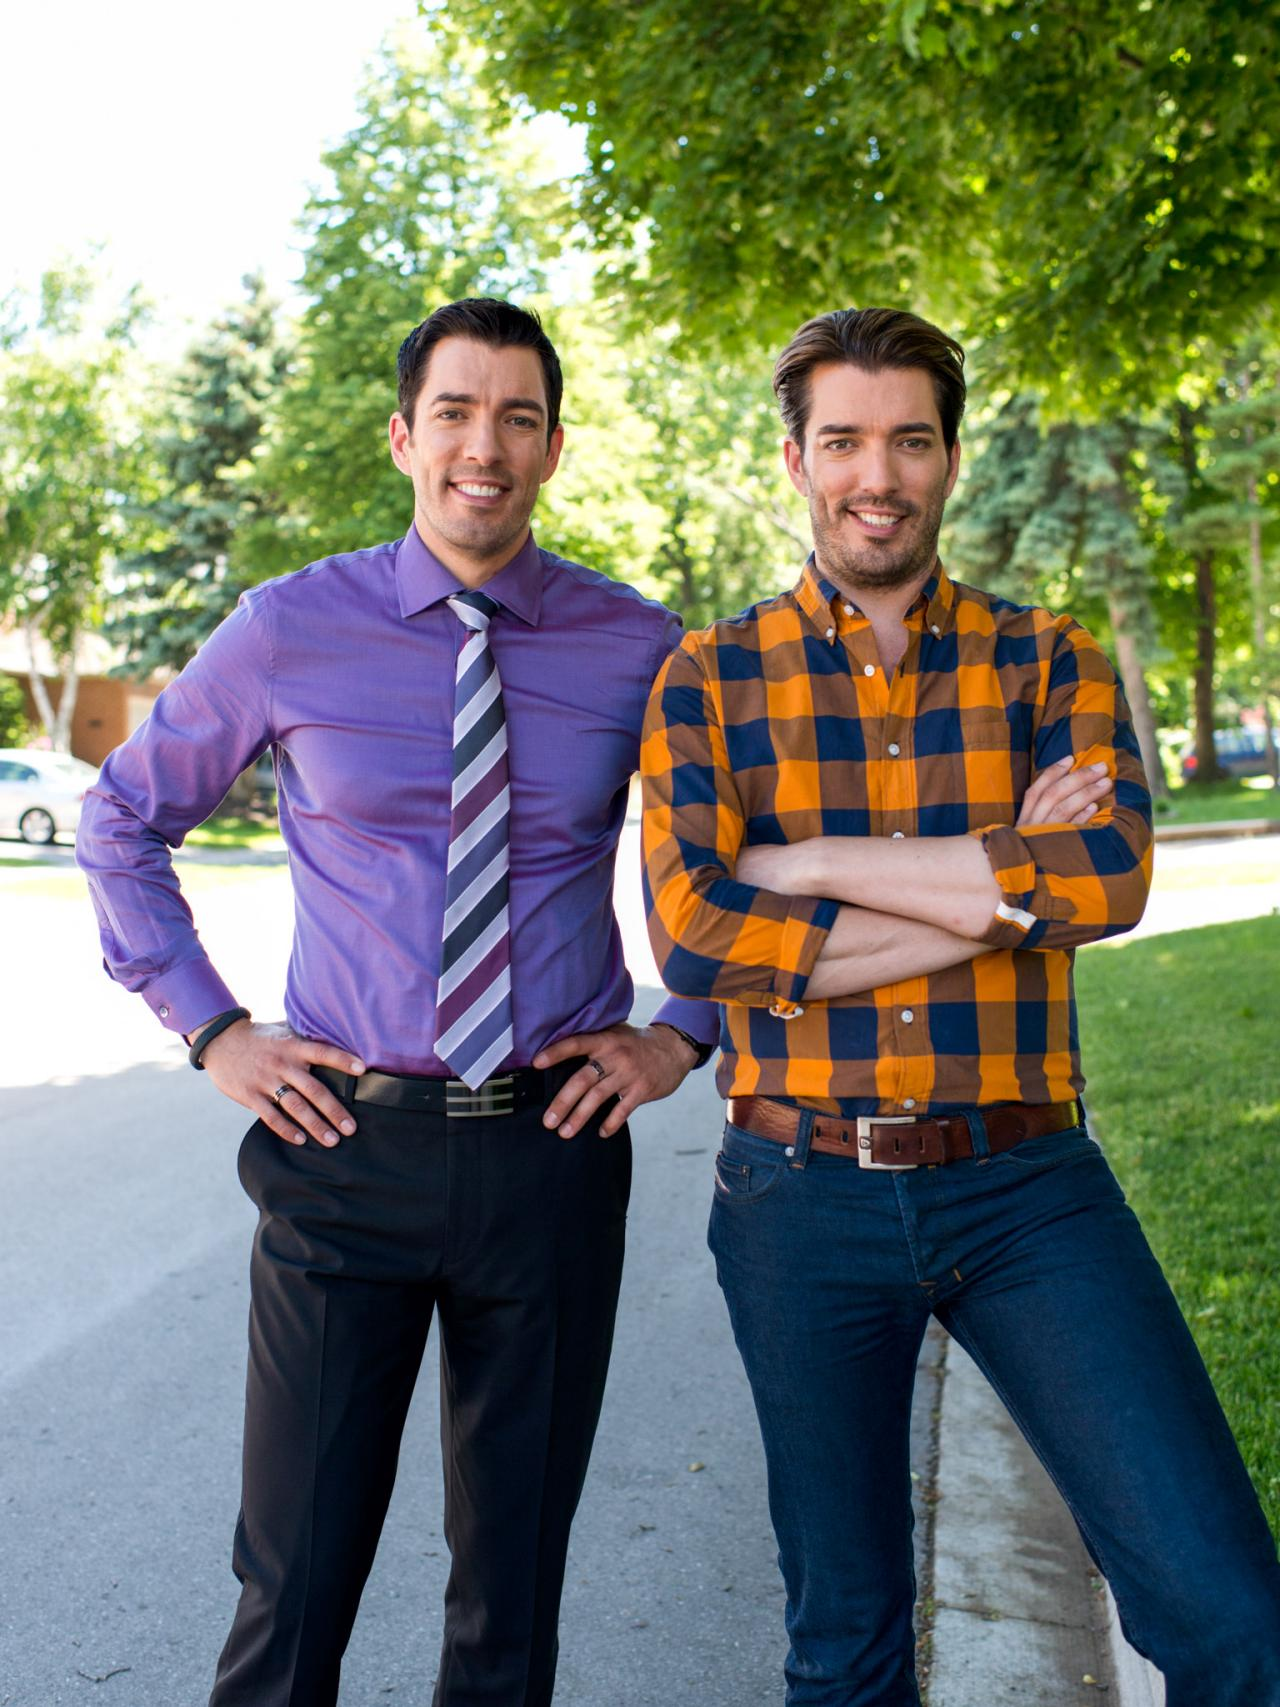 Property brothers drew and jonathan scott on hgtv 39 s buying Who are the property brothers